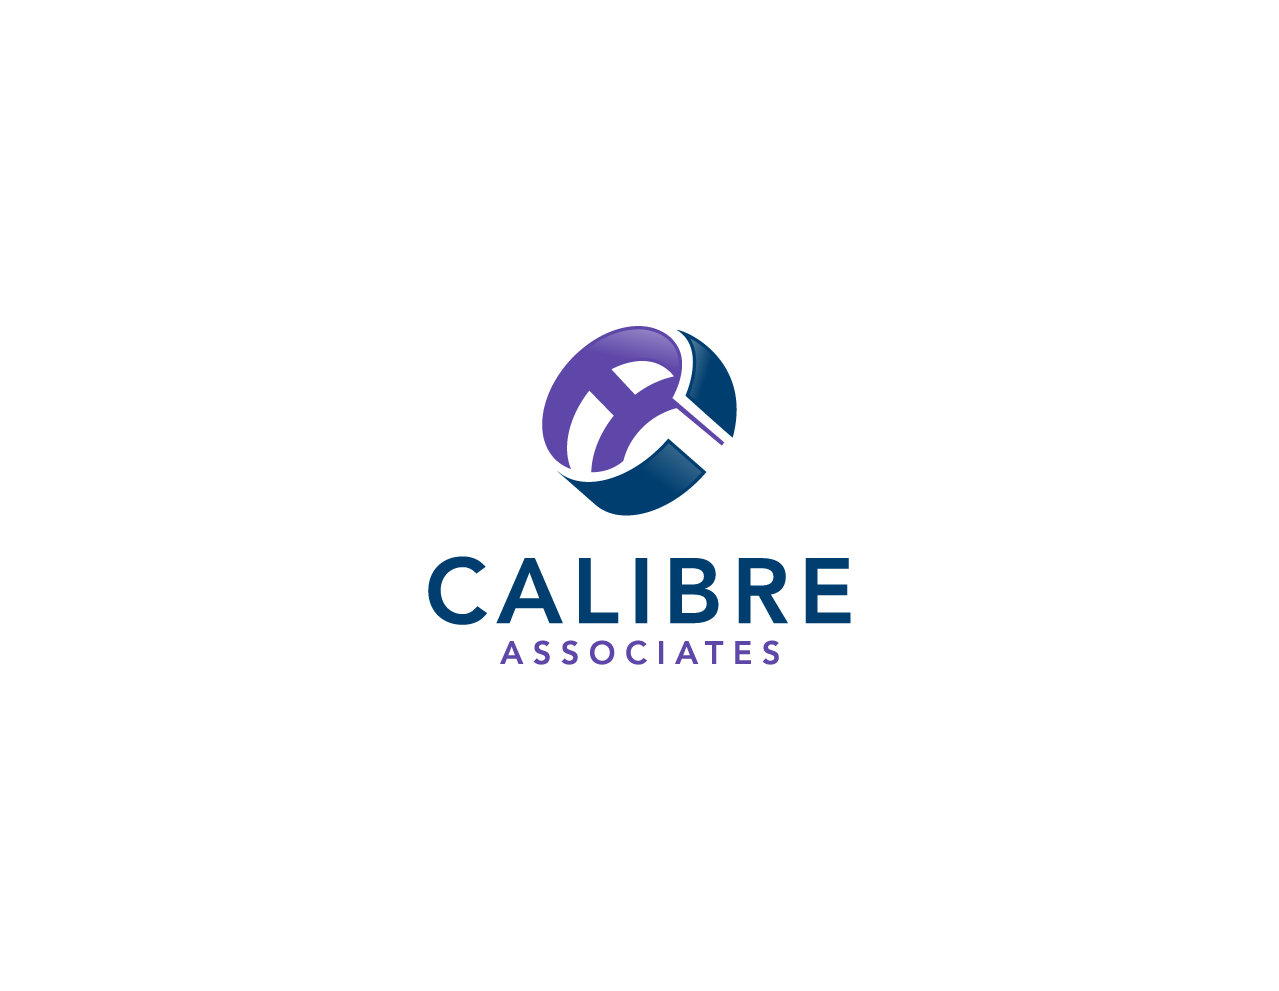 Calibre Associates